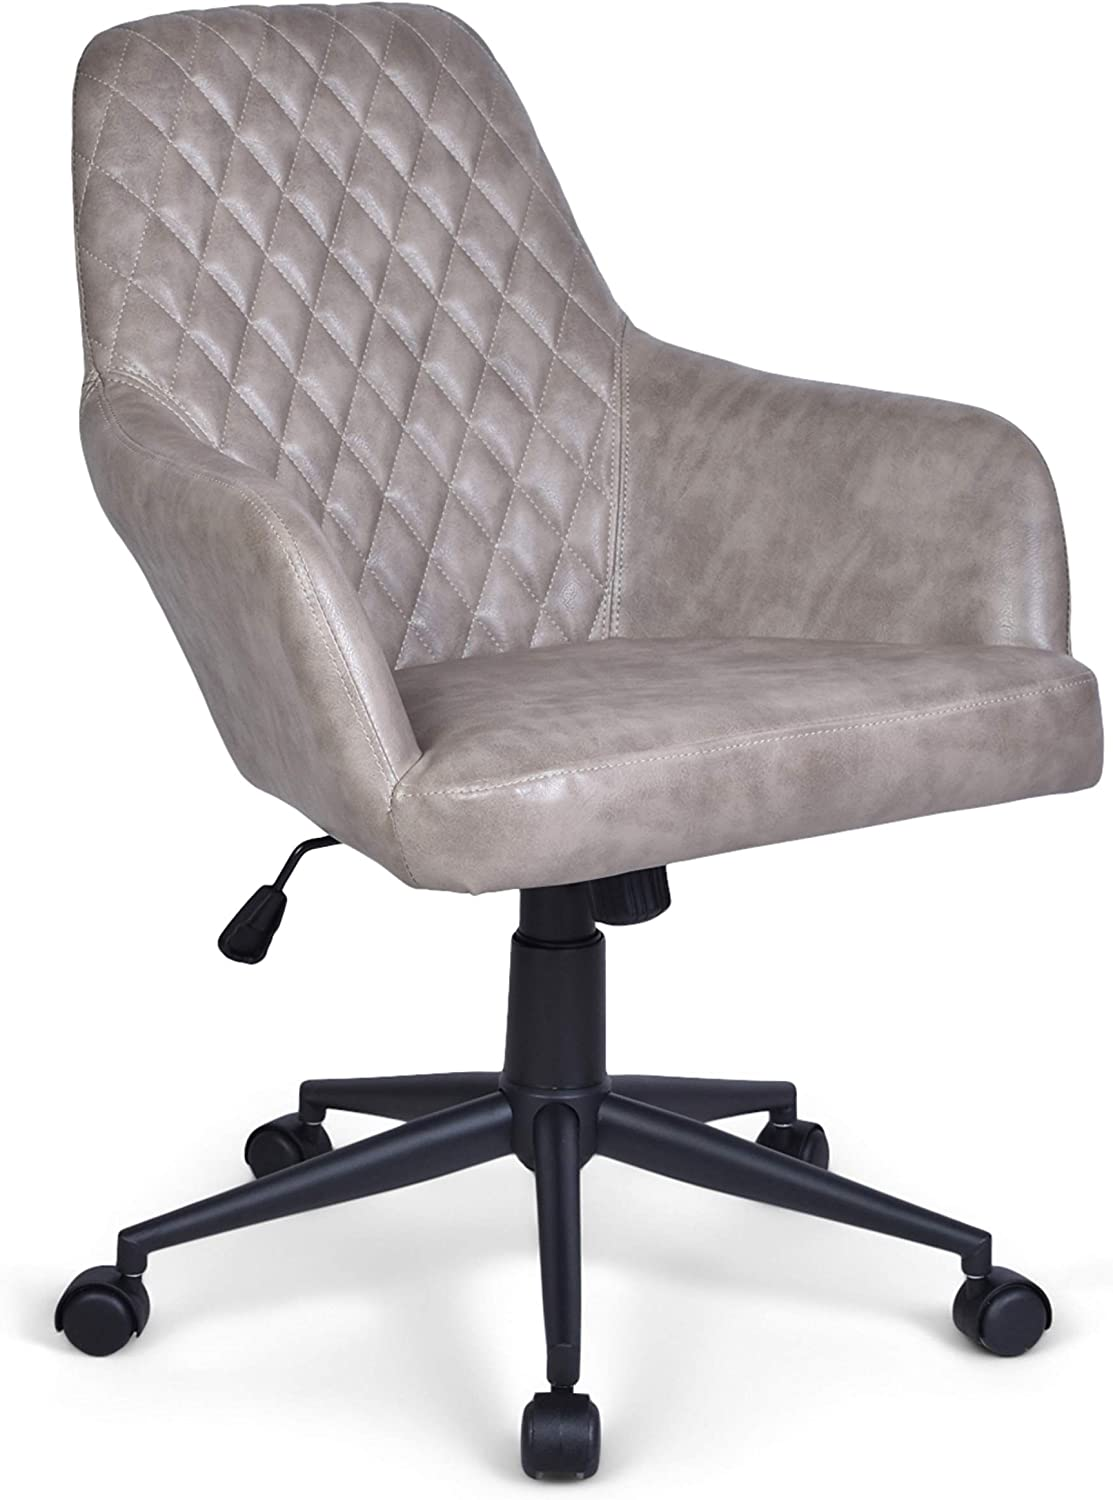 Simpli Home Goodwin Swivel Adjustable Executive Computer Office Chair in Distressed Grey